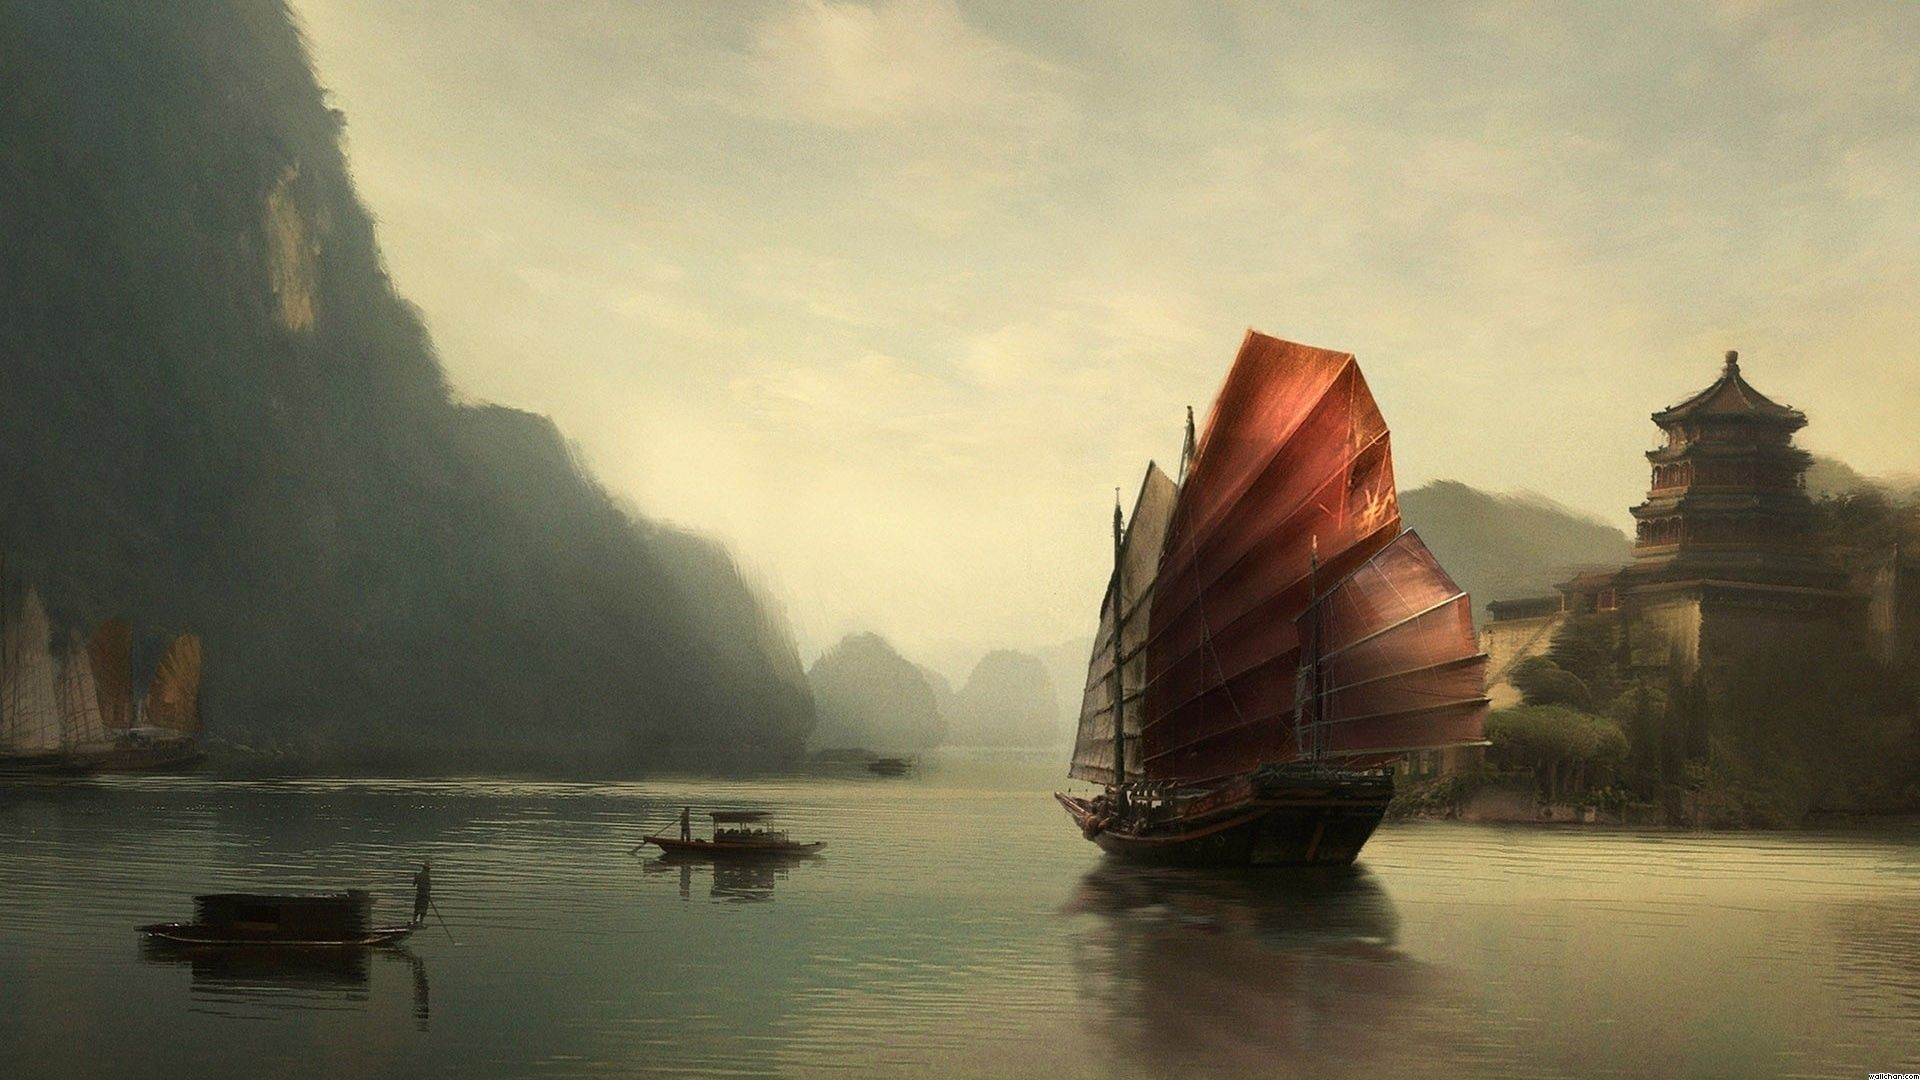 Res: 1920x1080, free Junk Ship Chinese Painting wallpaper, resolution : 1920 x tags: Junk,  Ship, Chinese, Painting.